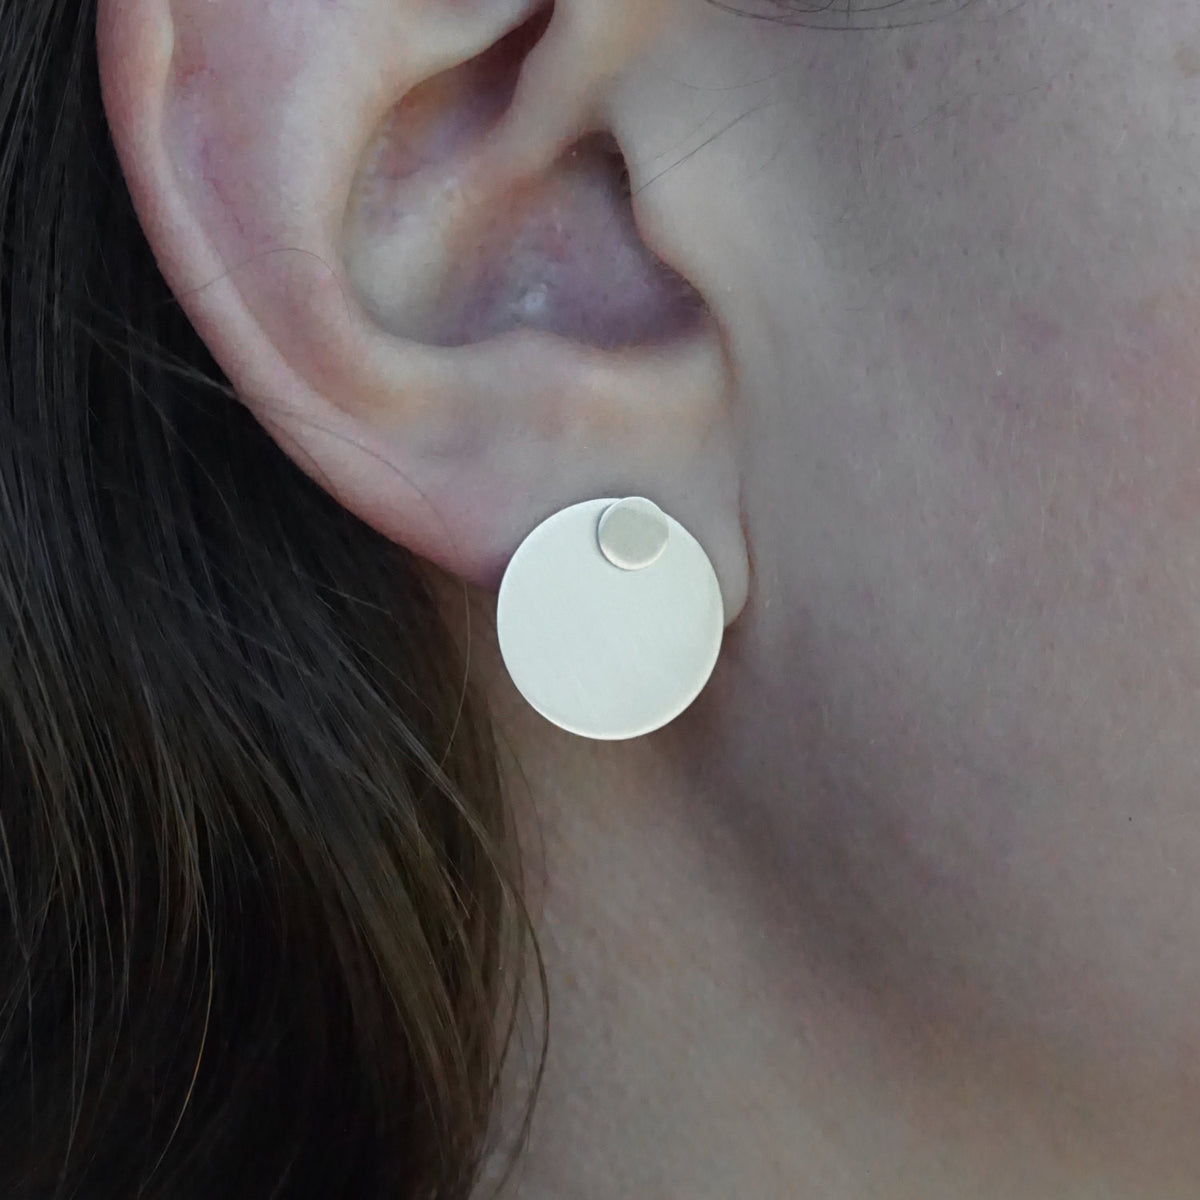 Circle Ear Jacket Stud Earrings 0094 - Virginia Wynne Designs